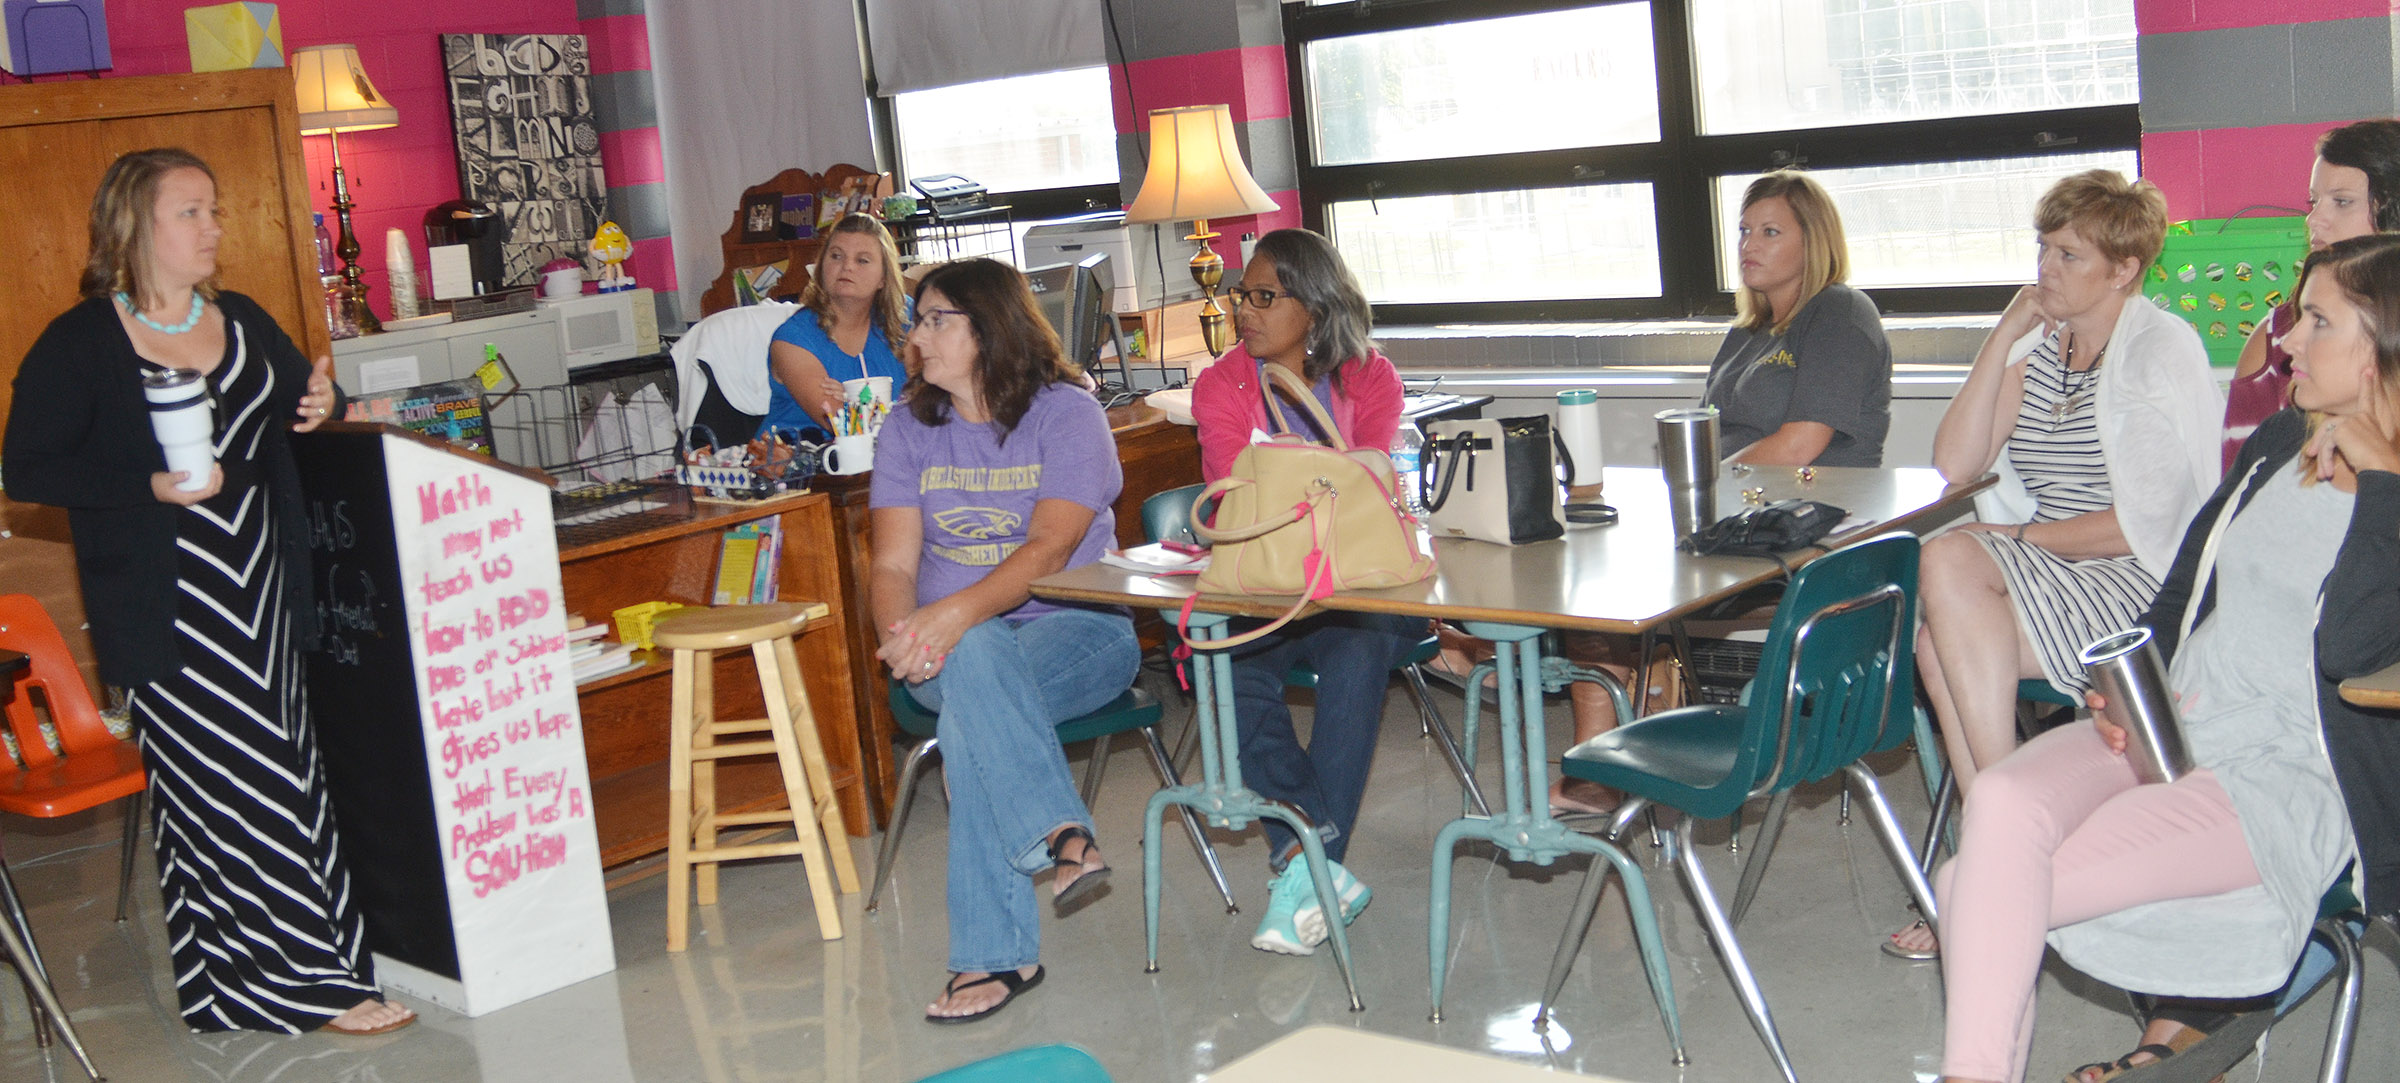 CMS teacher Katie Campbell, at left, and CES teacher Tammy Hash, second from left, lead a session about co-teaching.